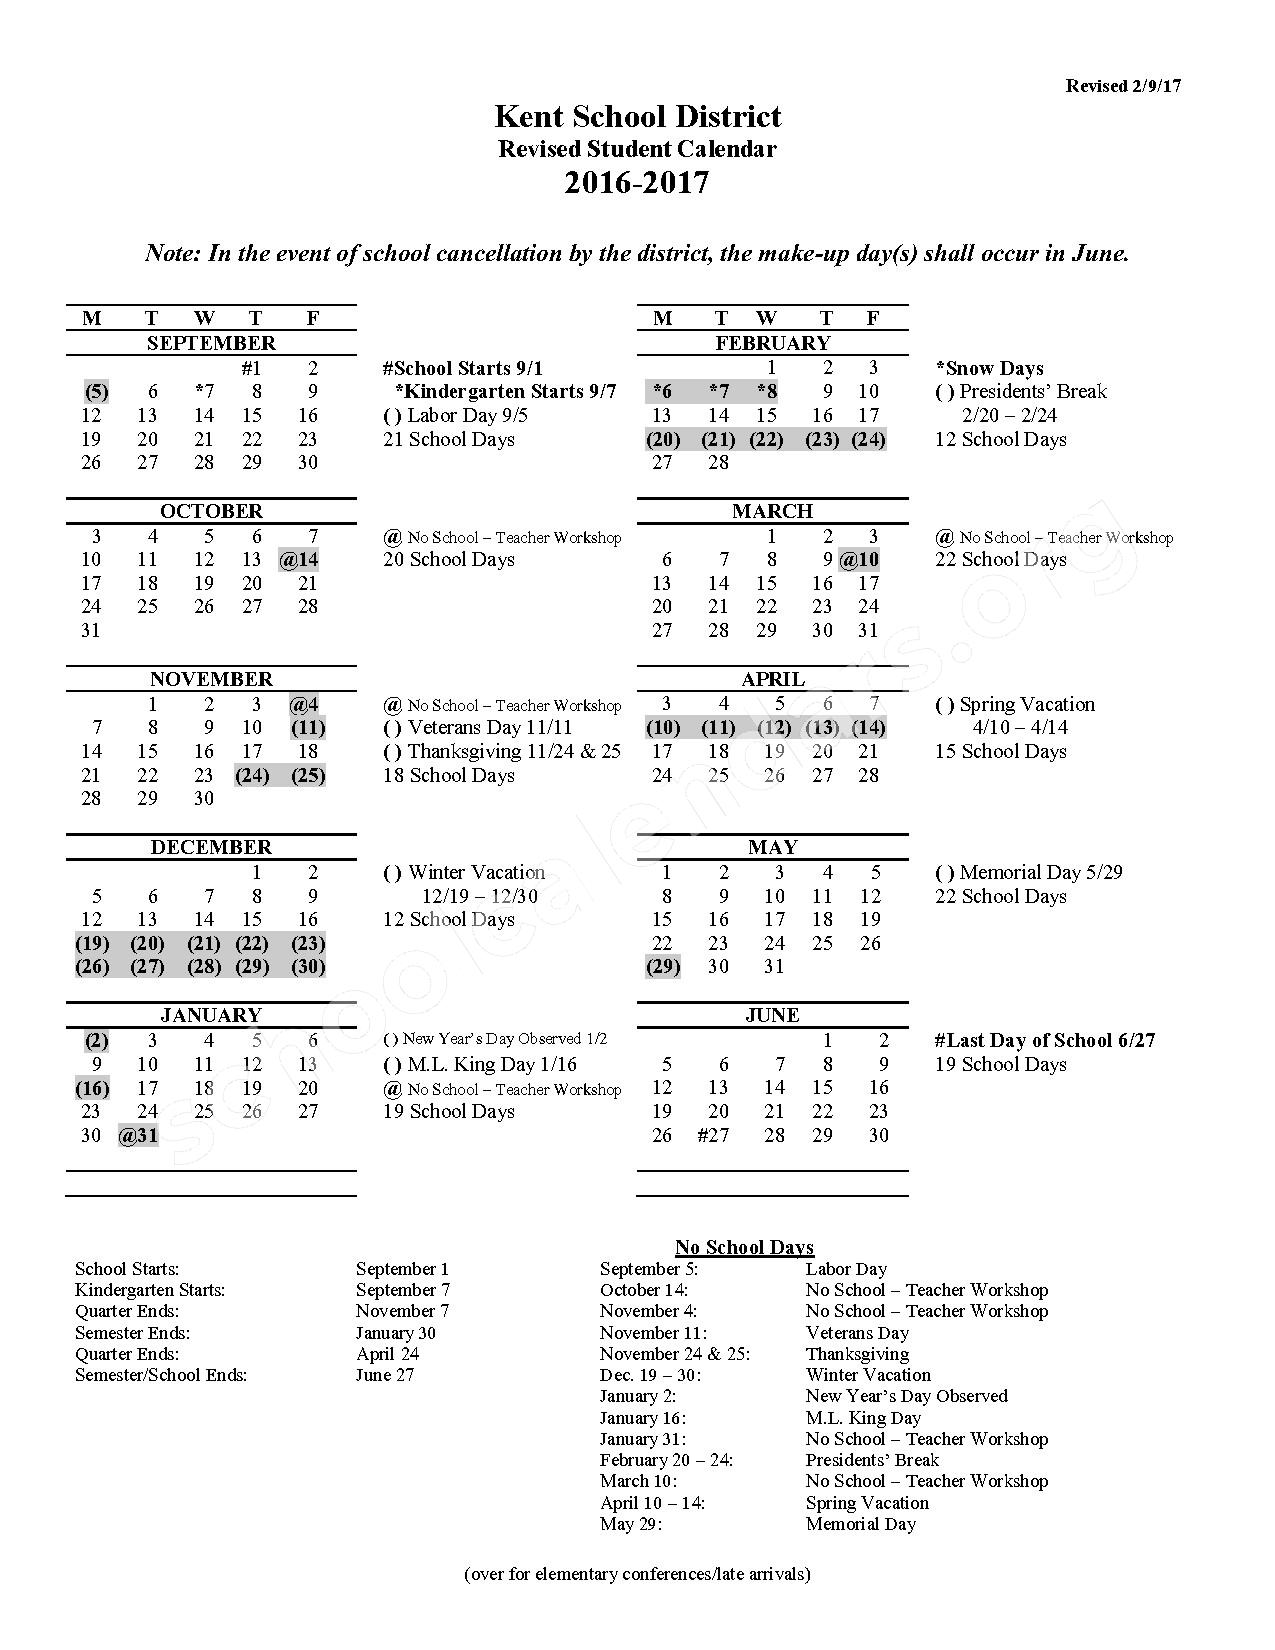 2016 - 2017 Student Calendar (Revised) – Meadow Ridge Elementary School – page 1